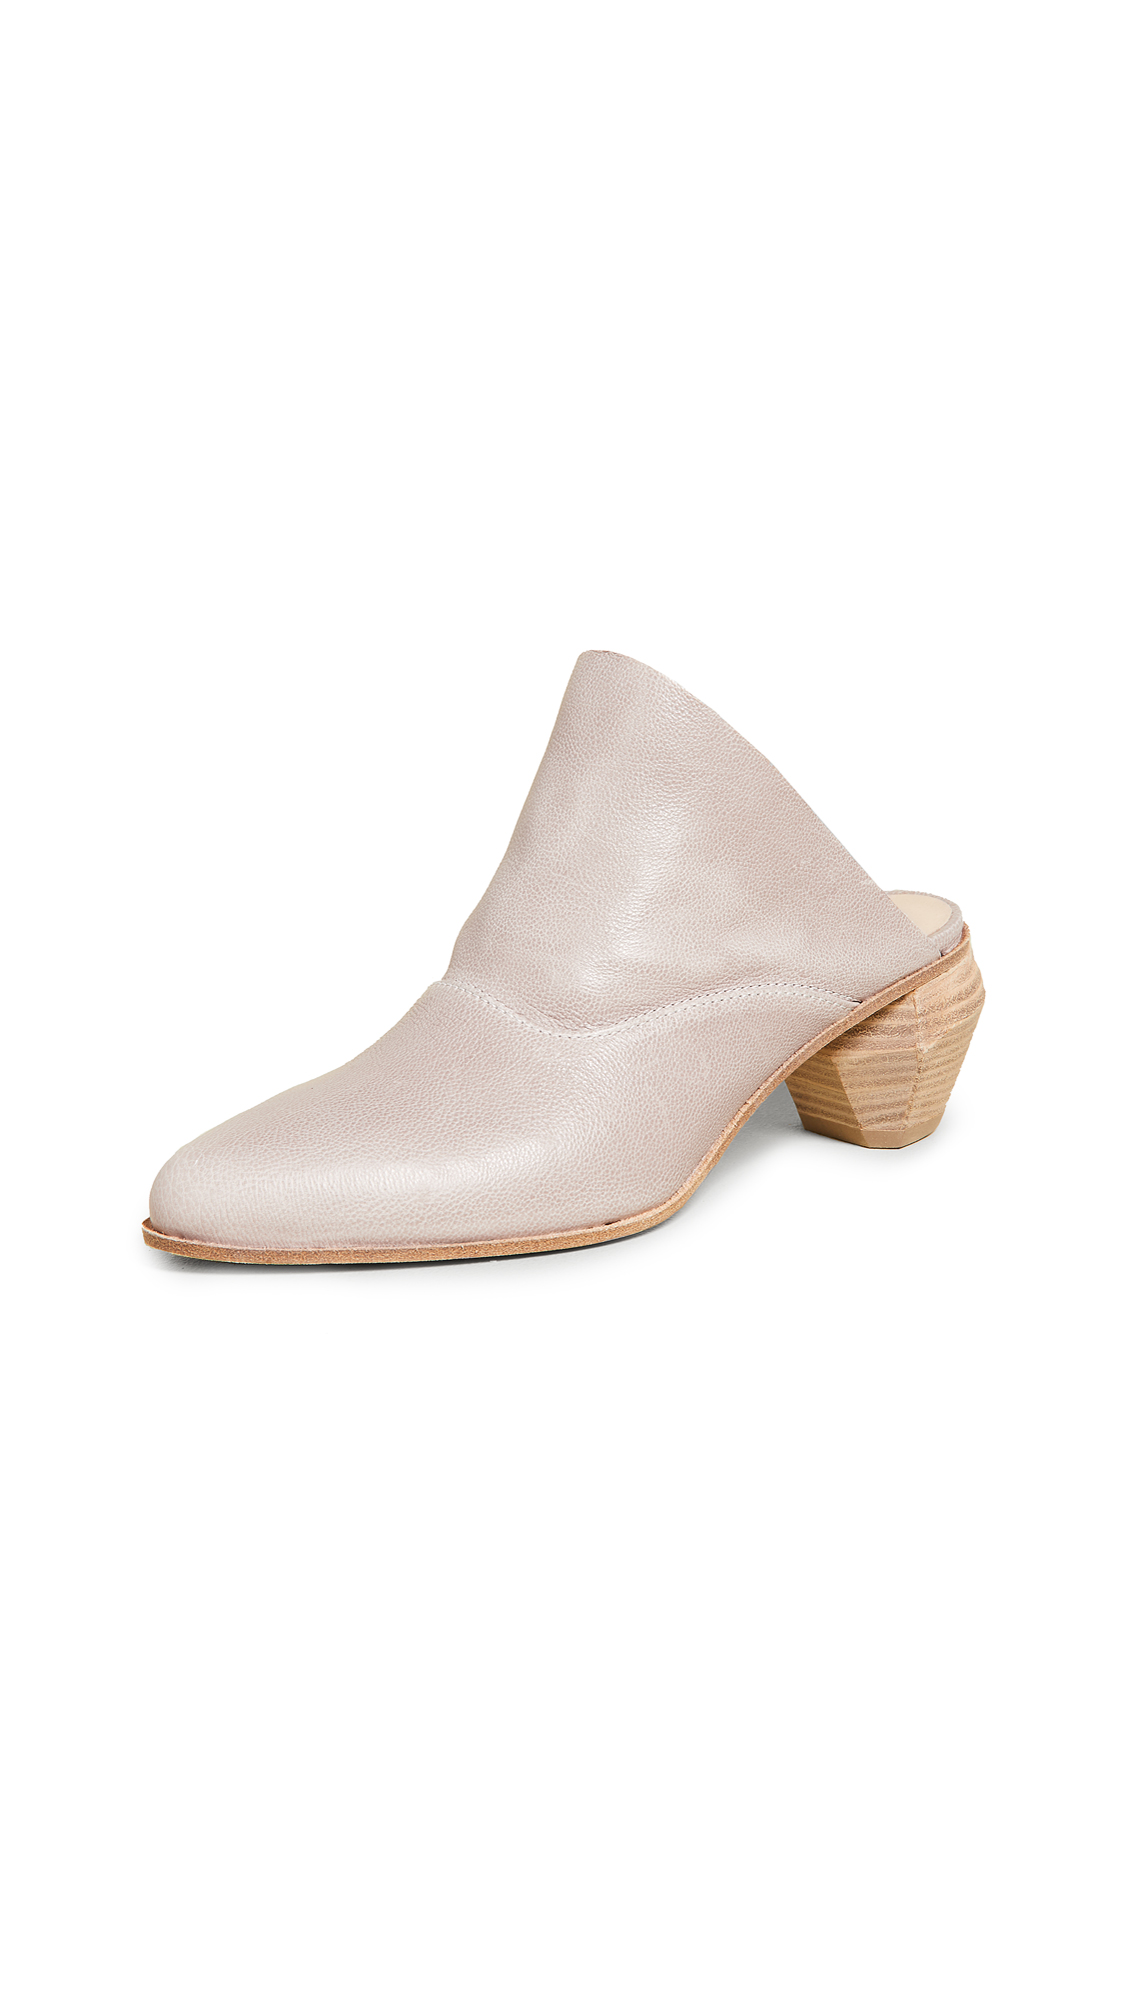 LD Tuttle The Arch Block Heel Mules - Fin Waxed